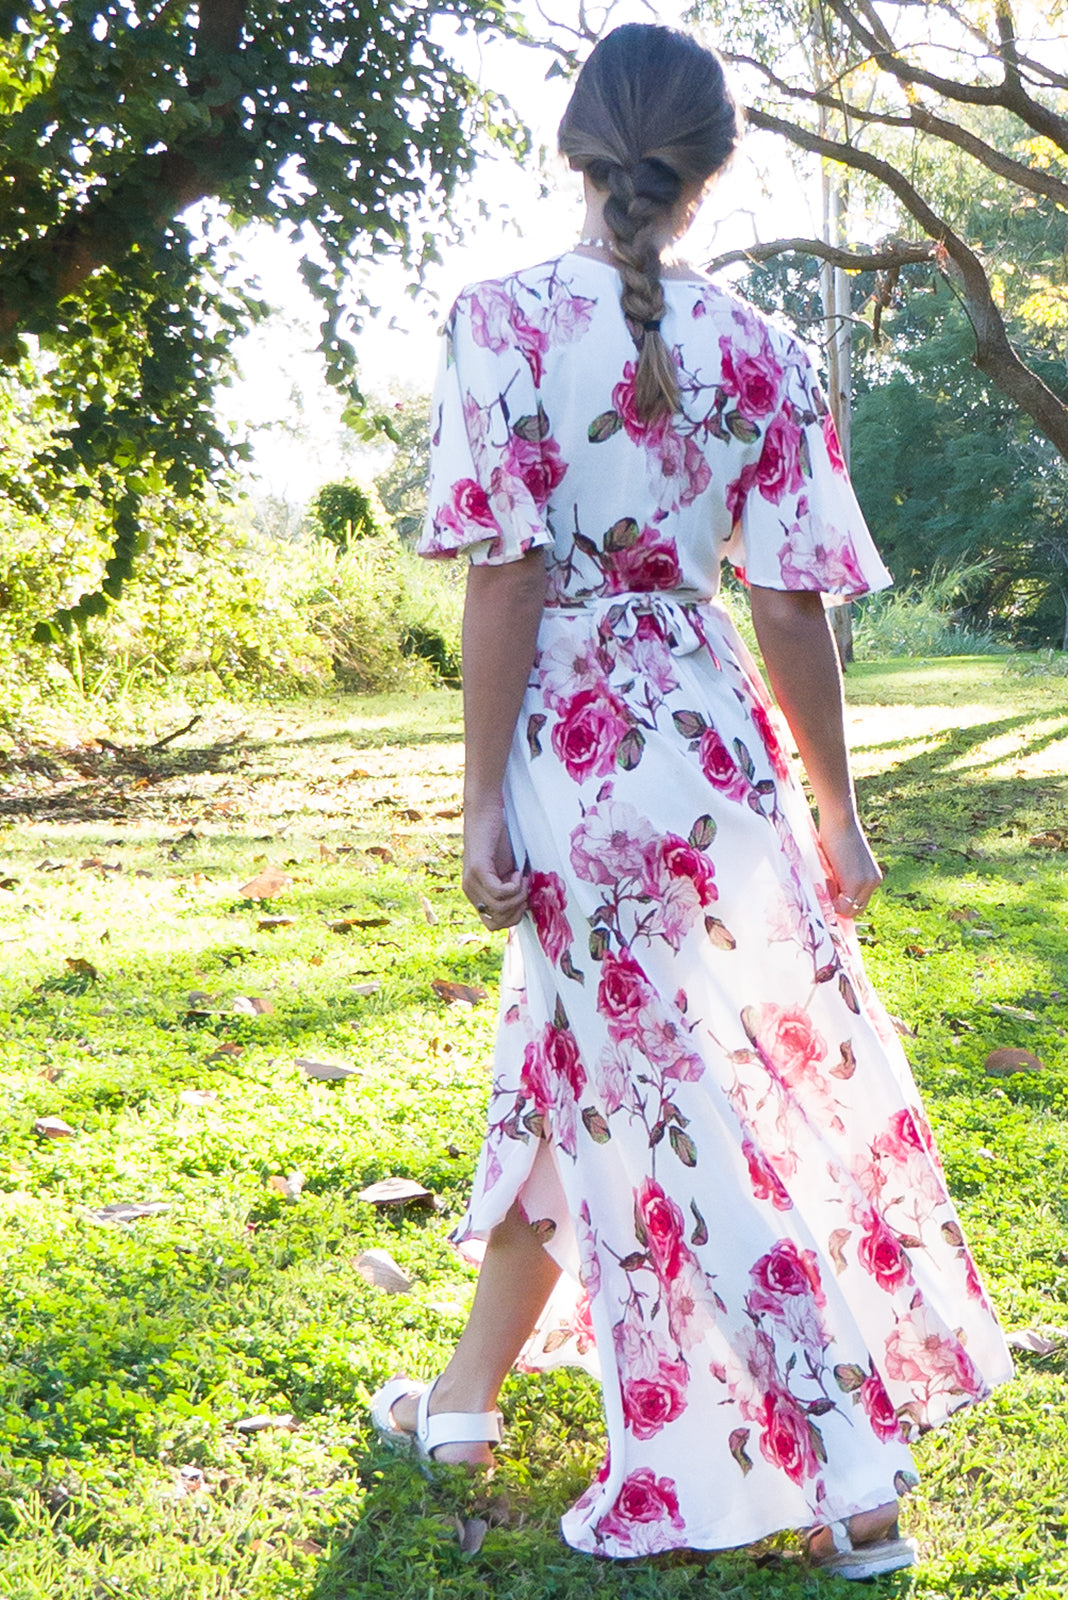 Petal Wrap Dress in Romantic Roses Print with flutter sleeve, wrap around maxi dress, floral wrap dress